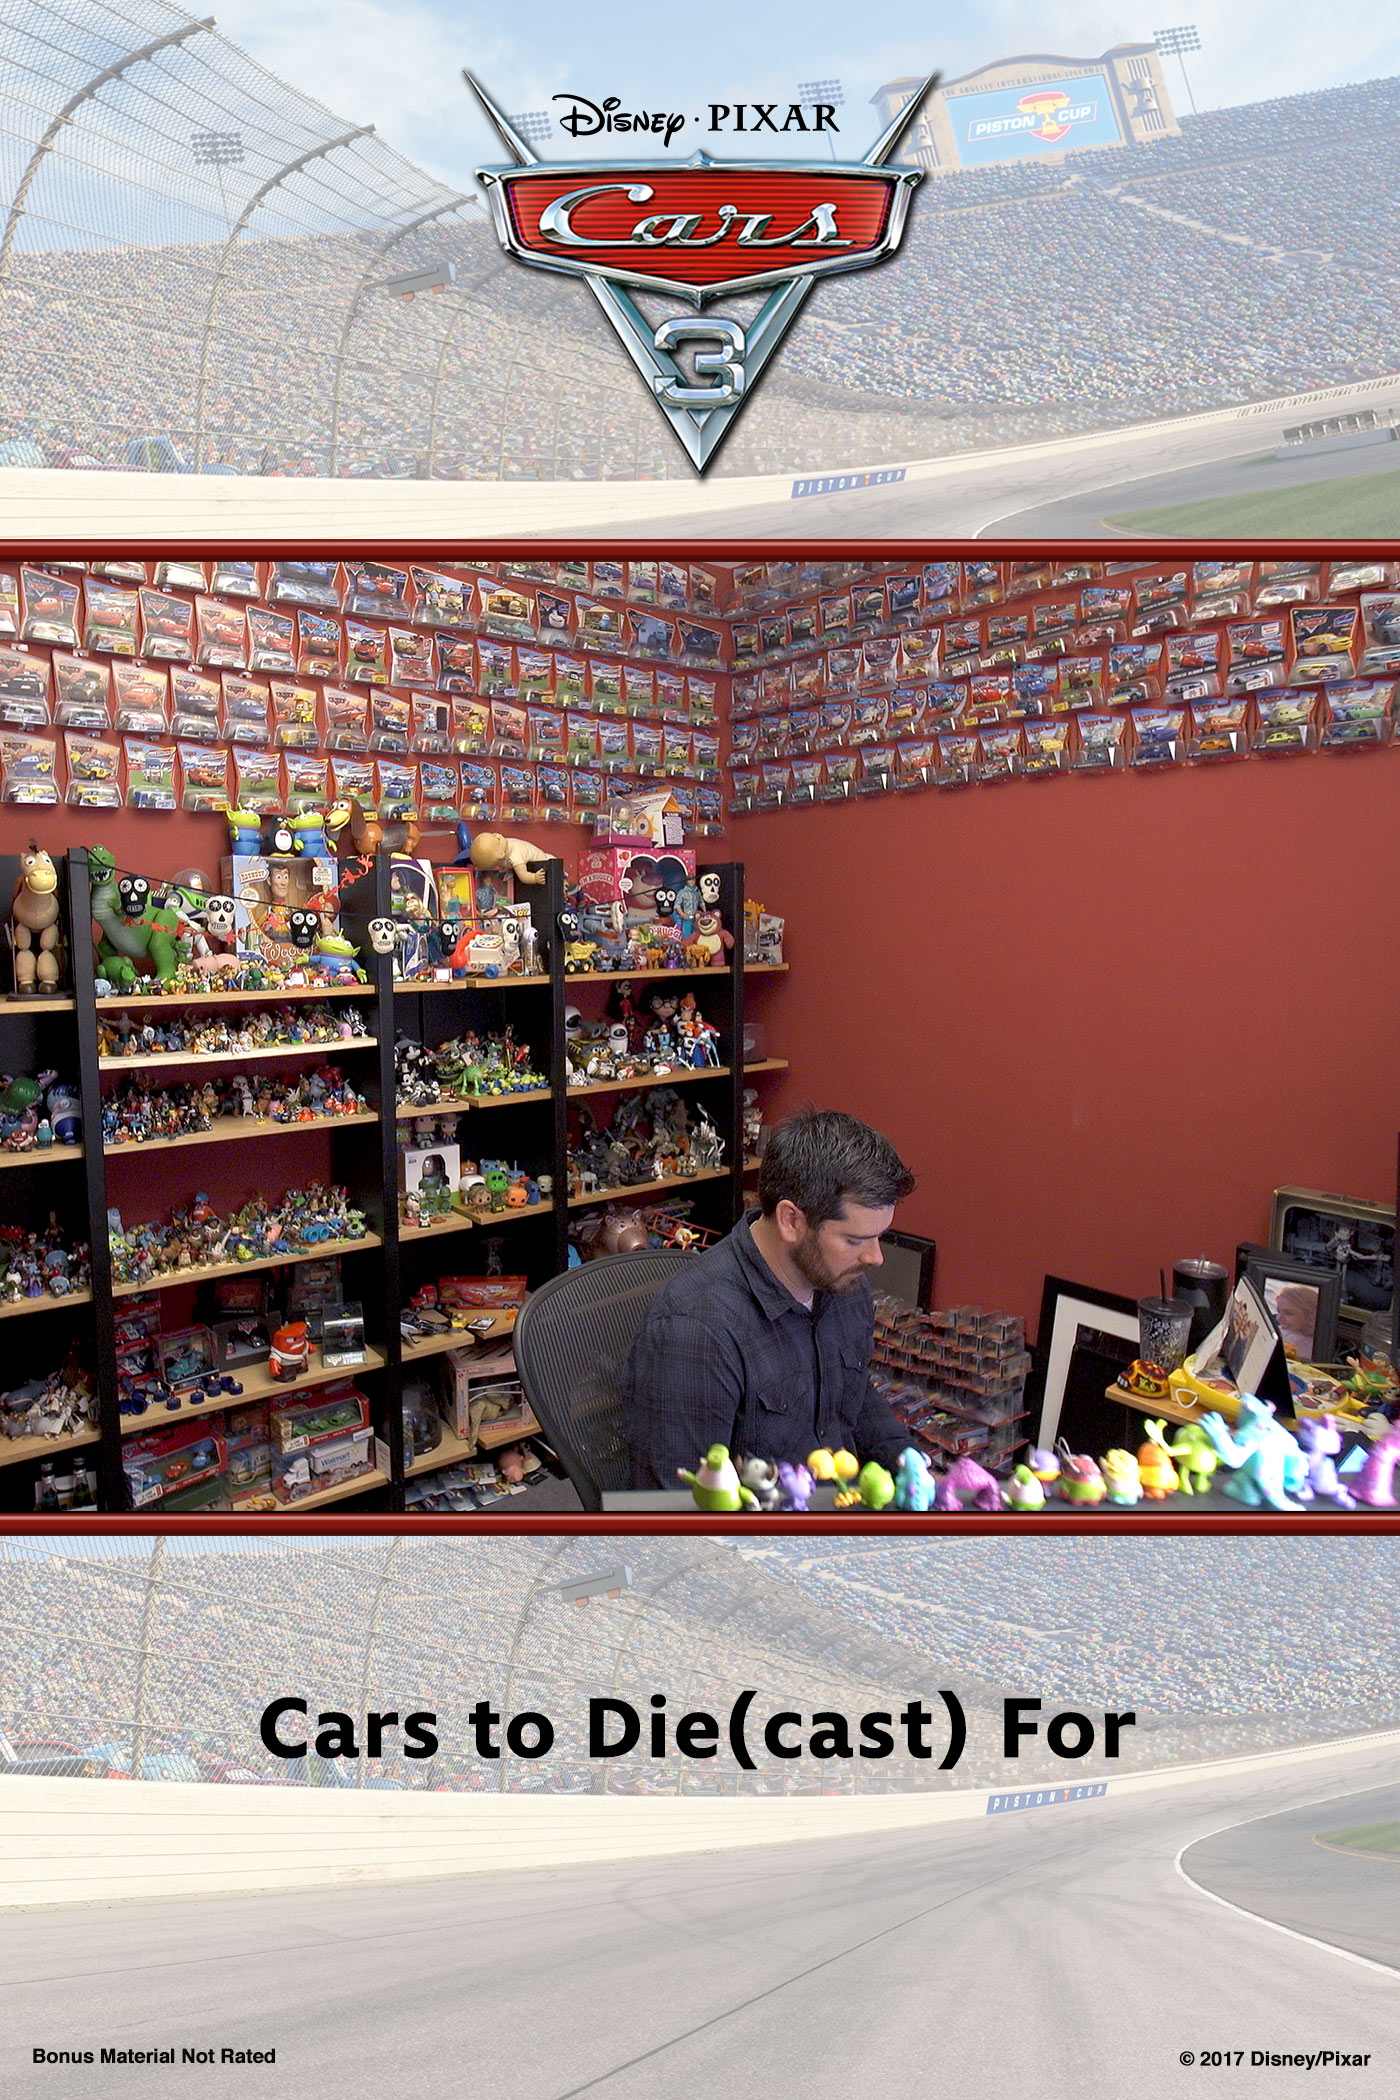 Cars to Die(cast) For